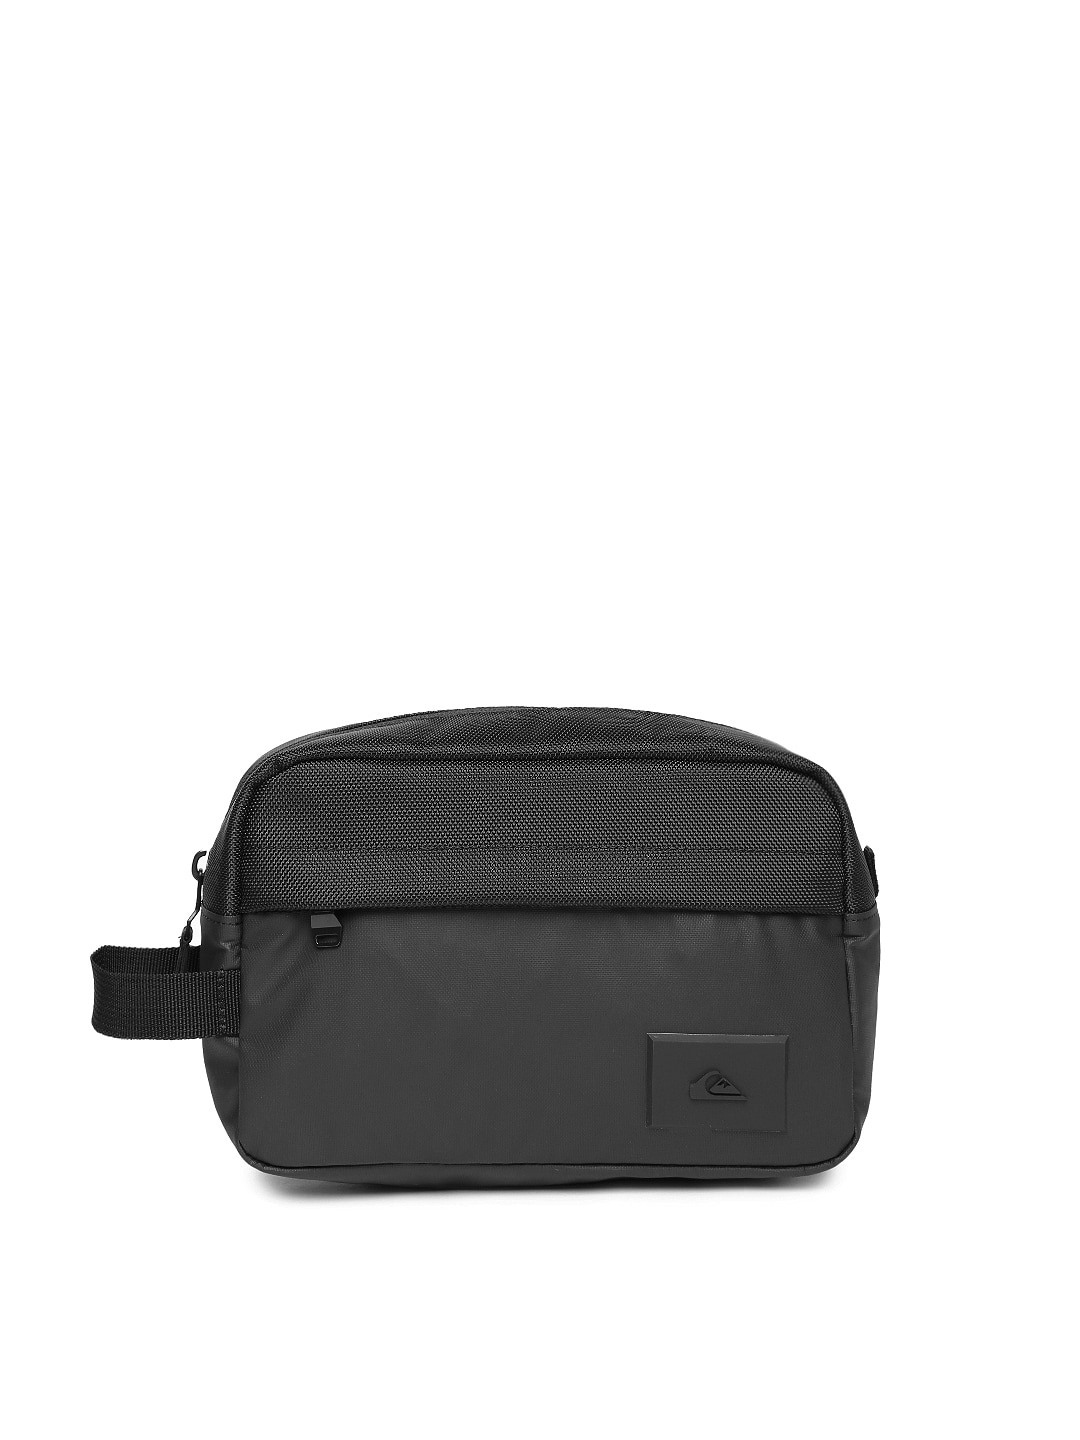 Quiksilver Men Black Travel Bag